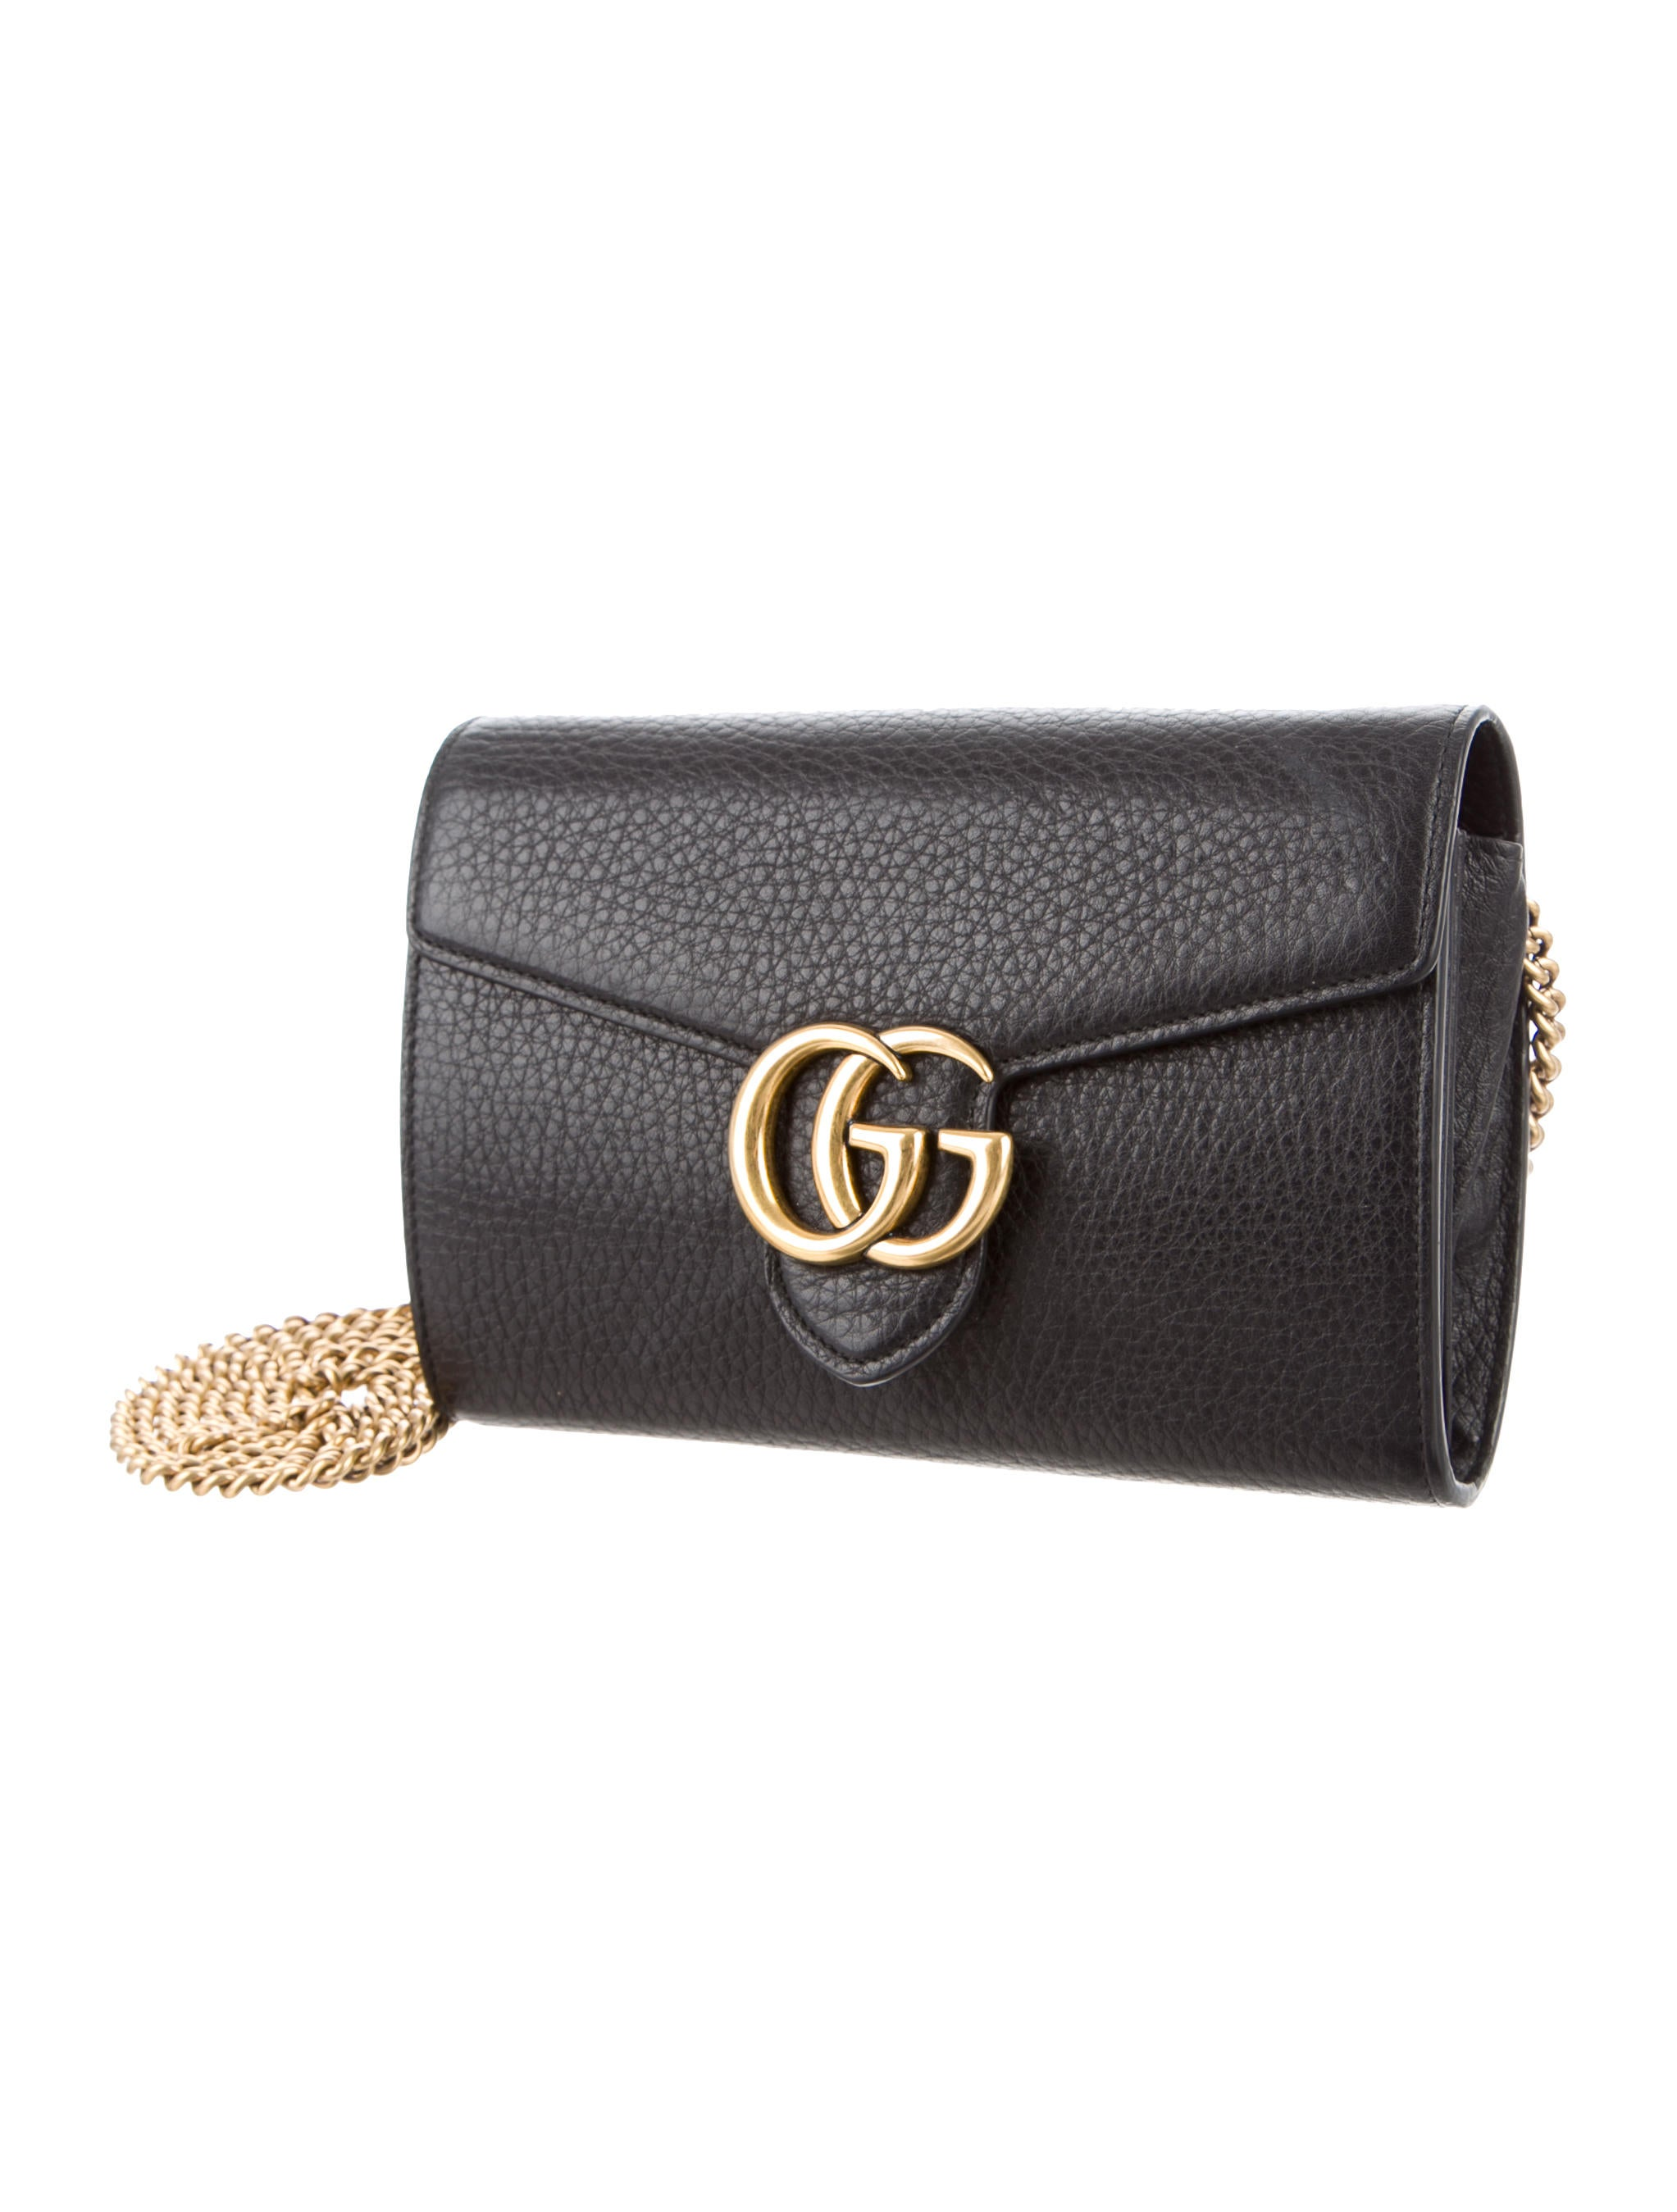 33210328834620 Replica Gucci Marmont Handbags For Women | Dr.Paul